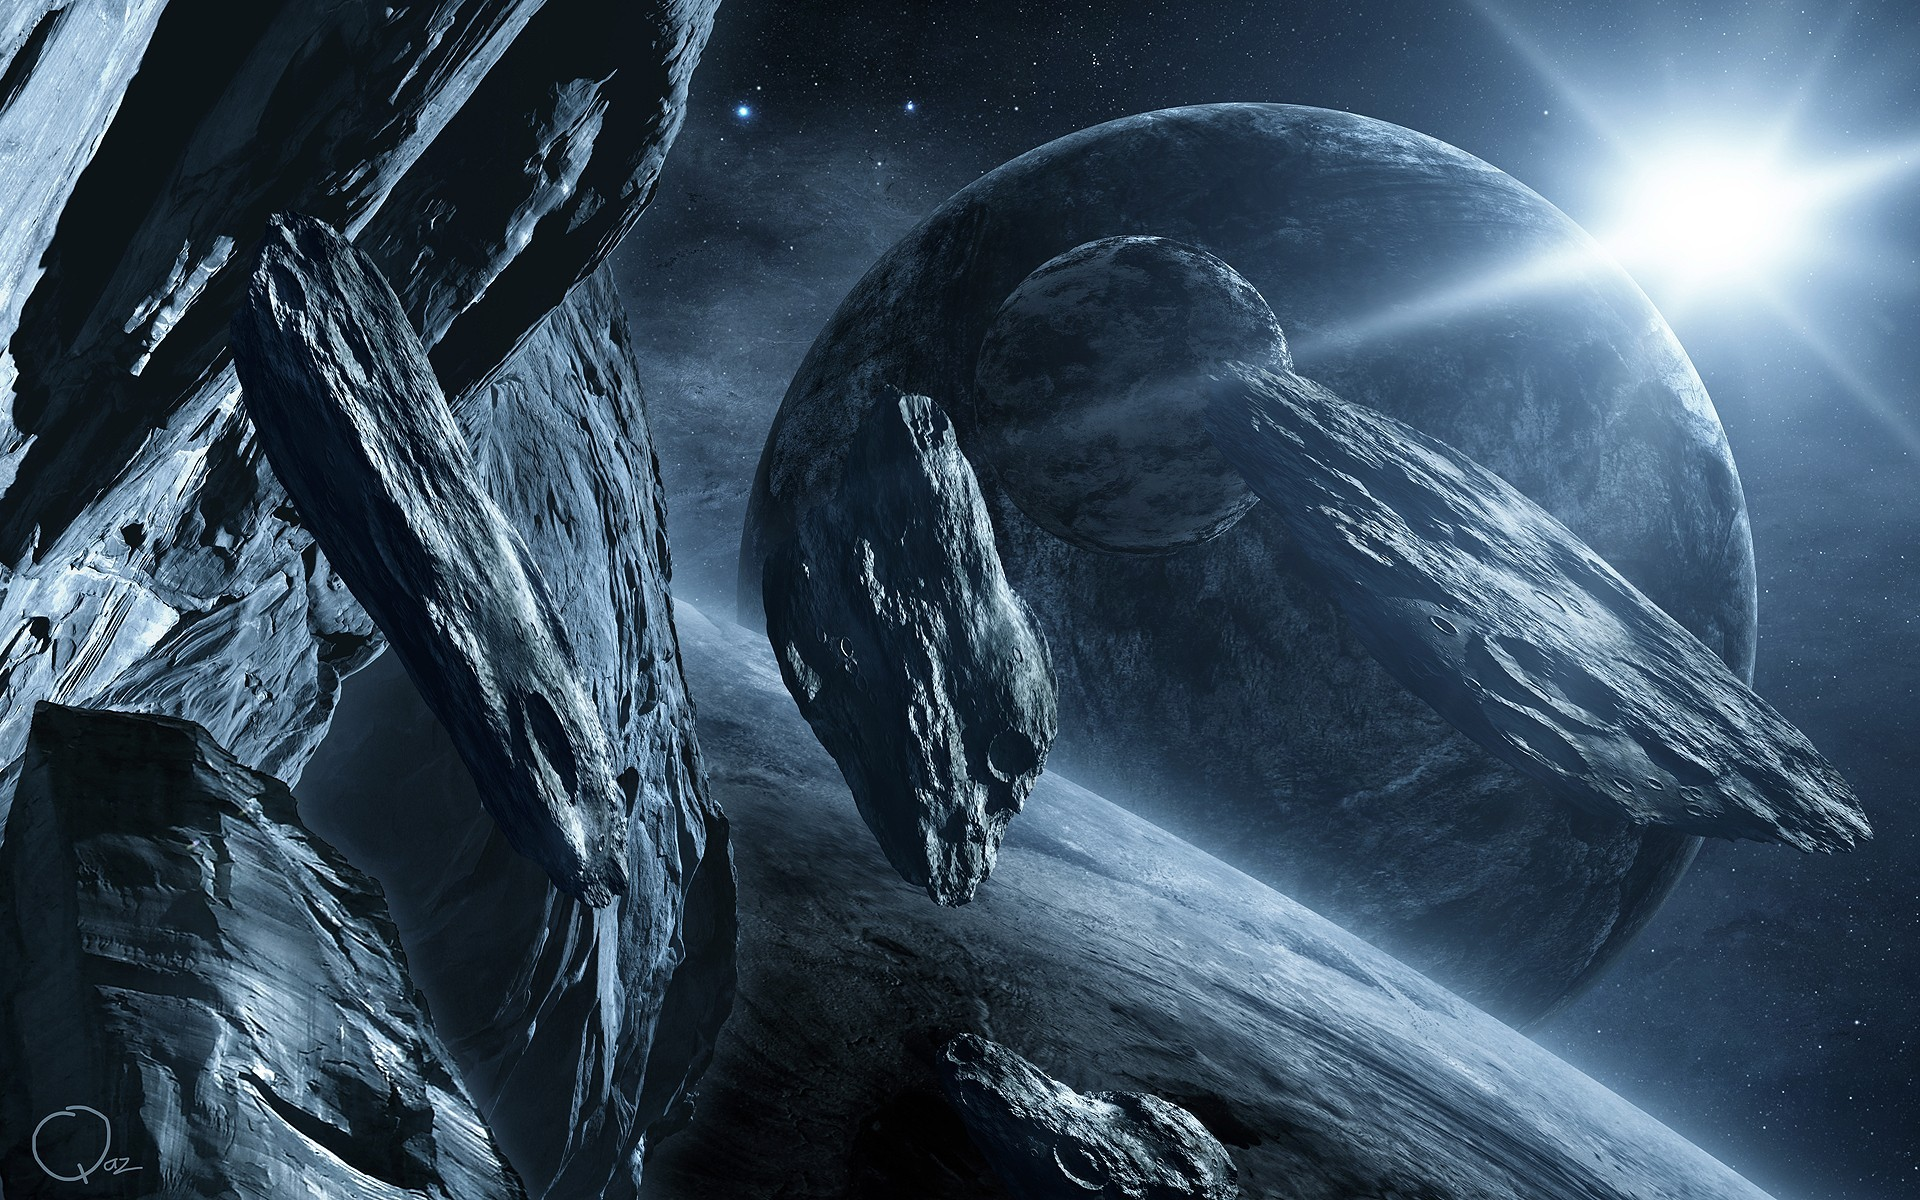 Hd Wallpaper Science Fiction: Planets Fantasy Art Science Fiction Artwork Asteroids